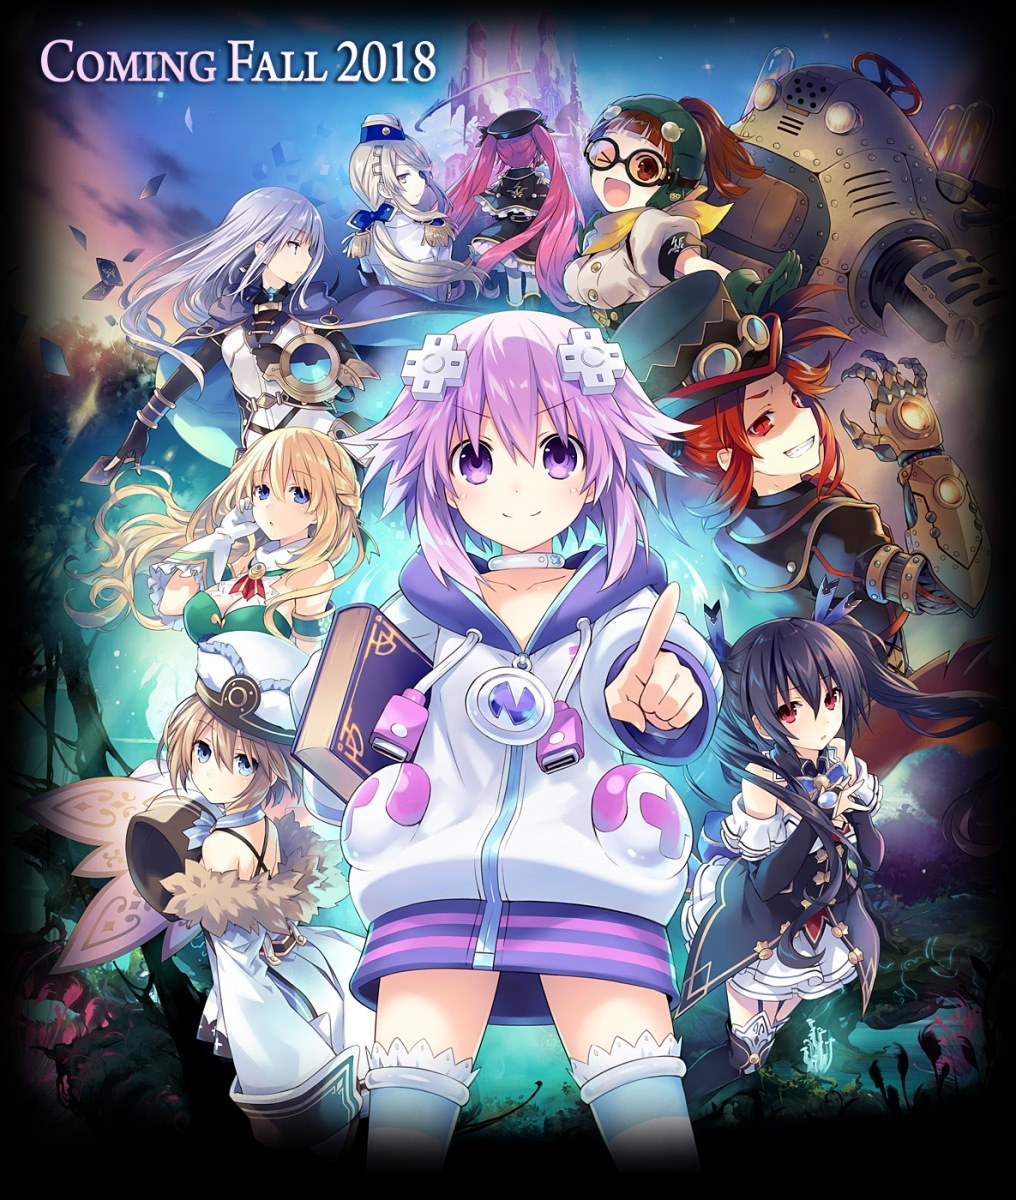 Super Neptunia RPG Coming This Fall